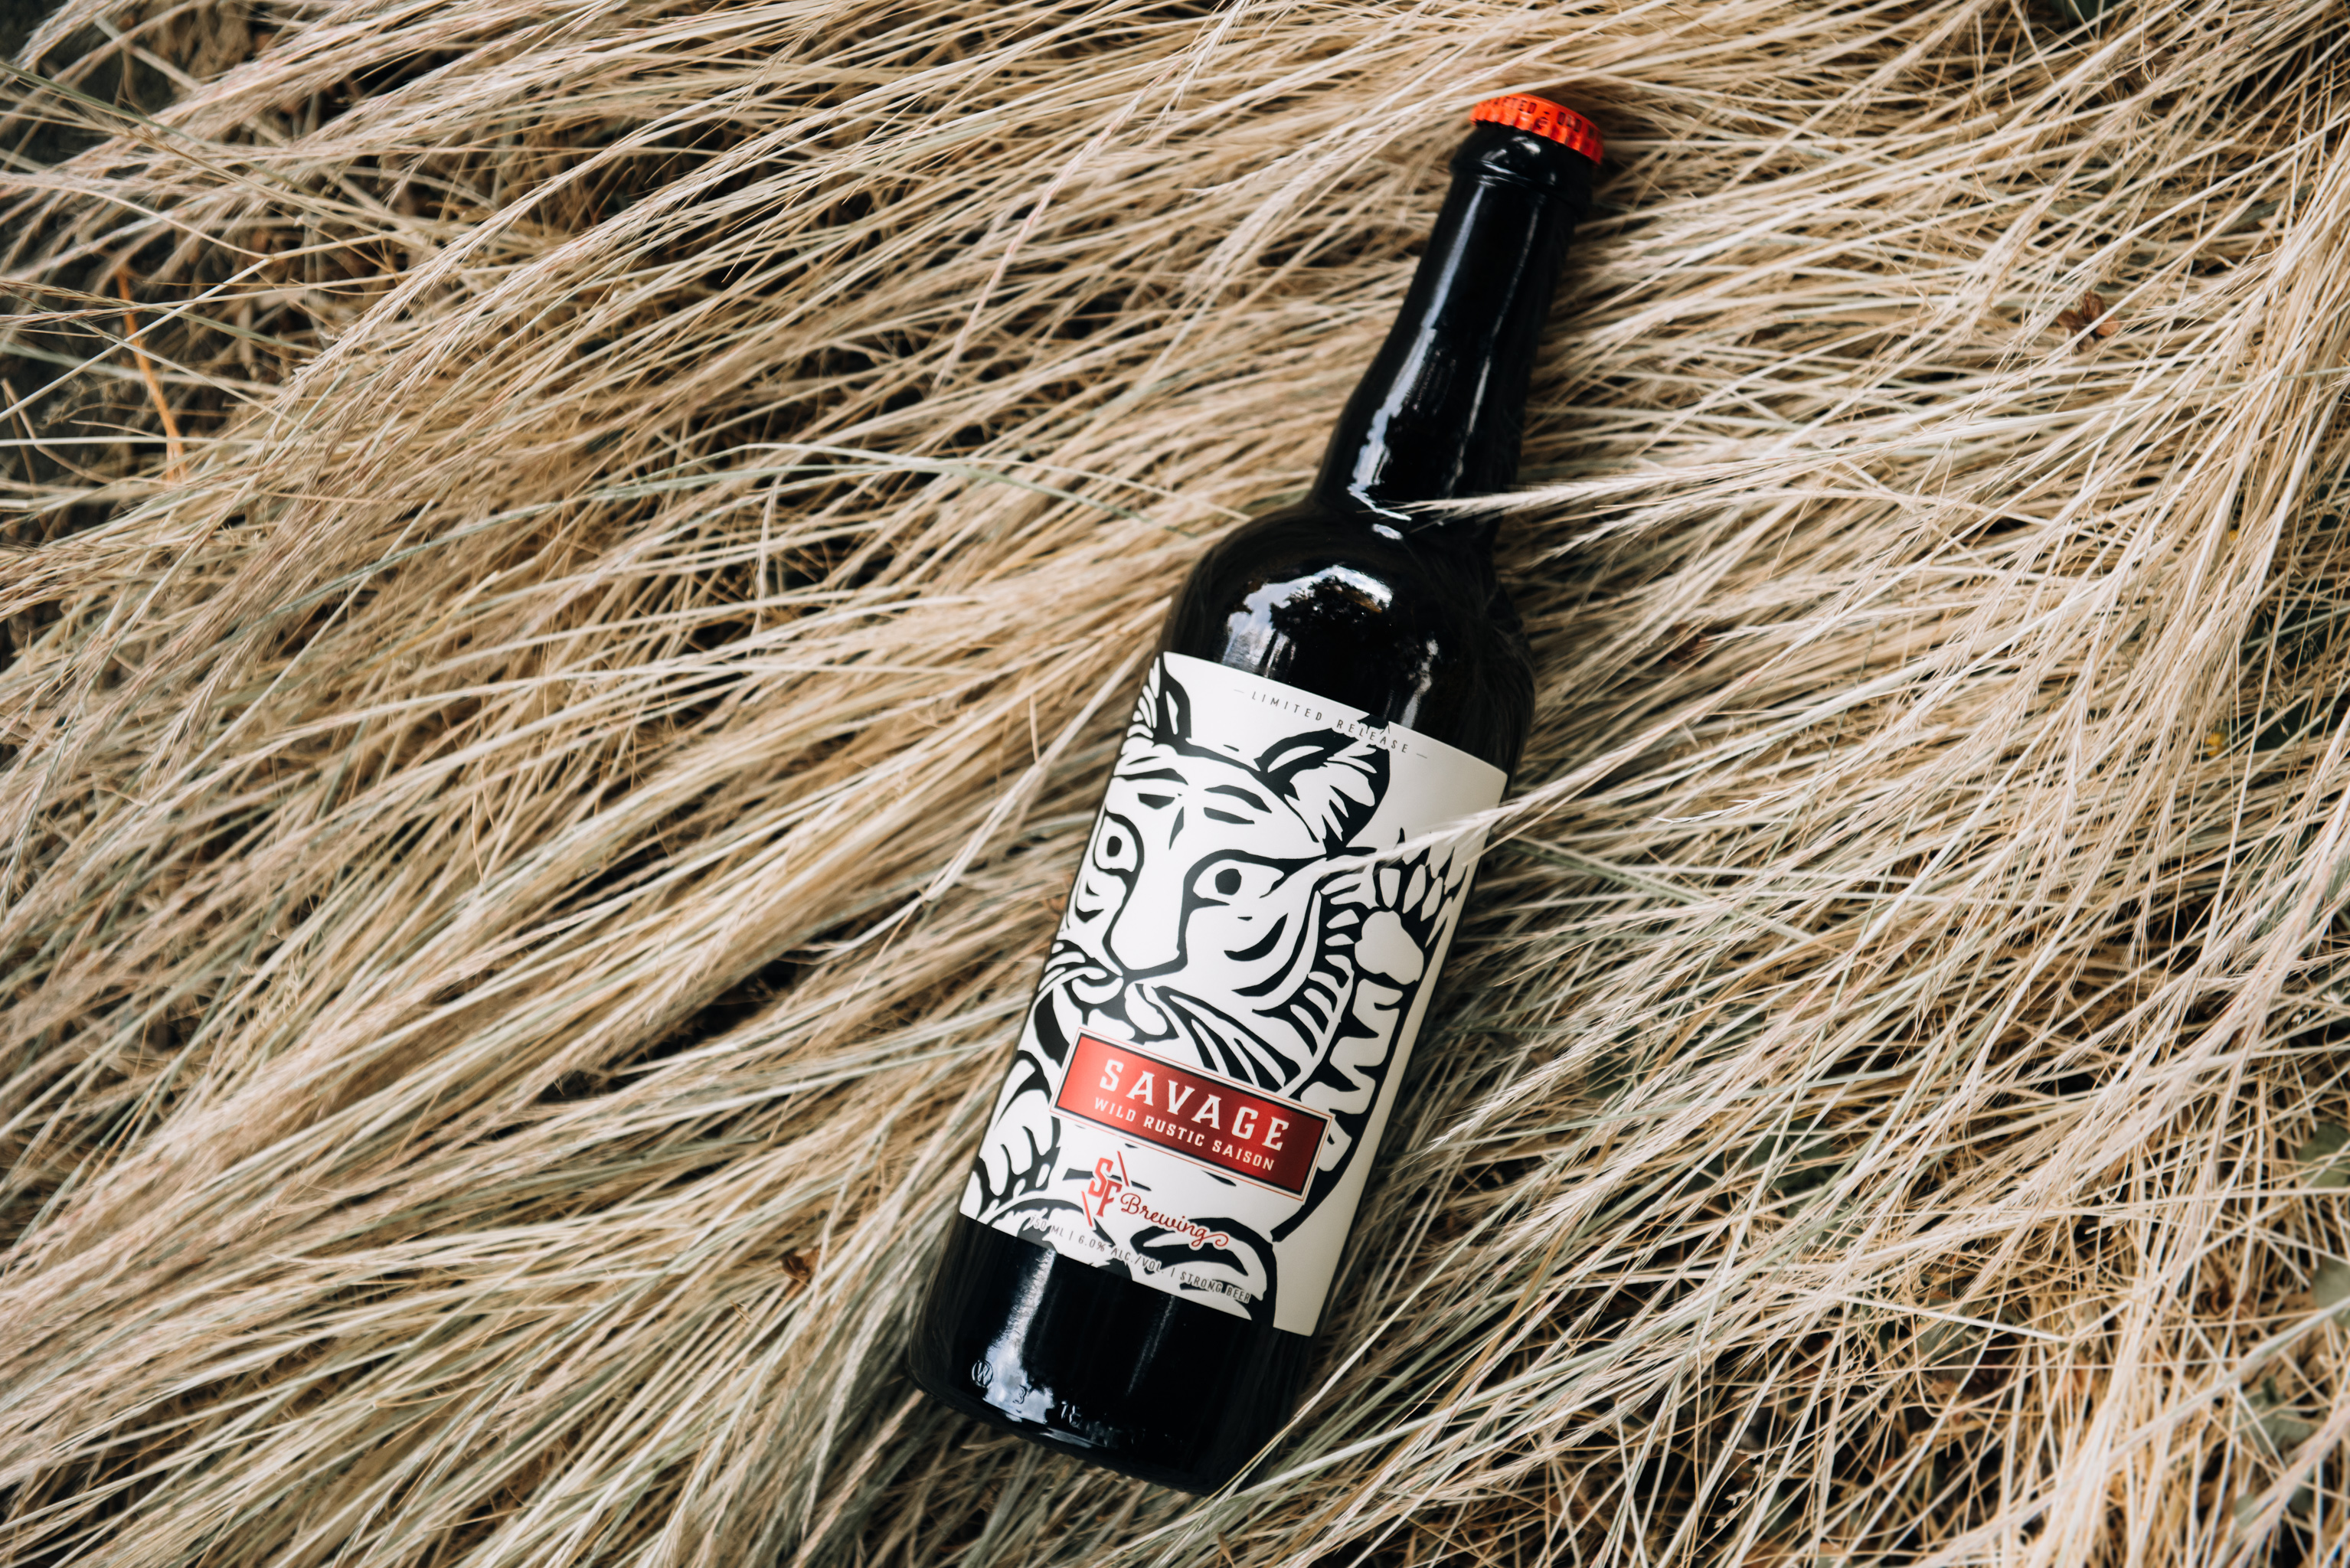 SAVAGE – Farmhouse Fest X Strange Fellows Brewing Collaboration